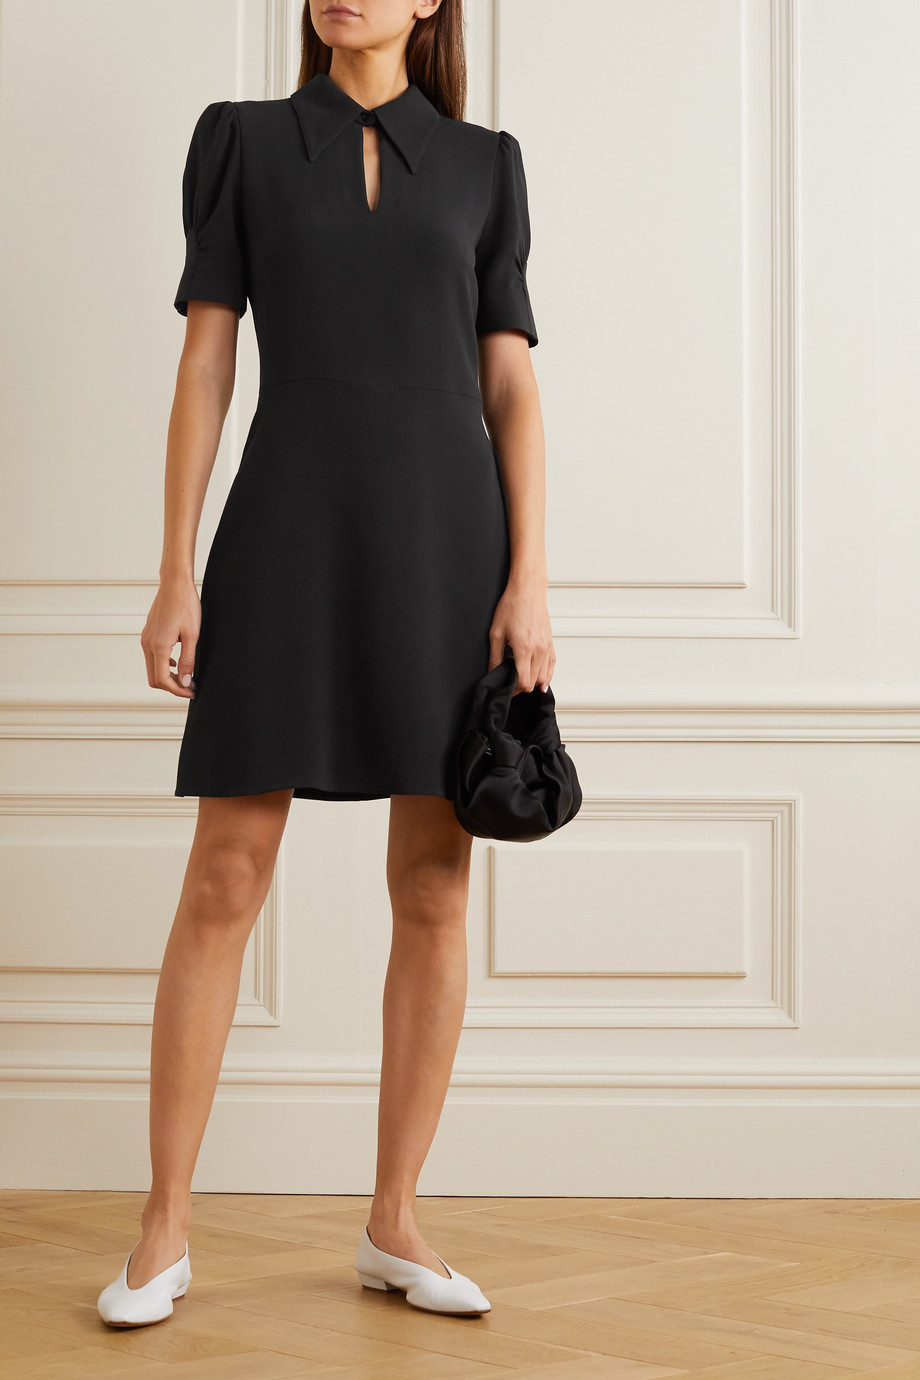 Stella McCartney Blair Minikleid aus Crêpe mit Cut-out